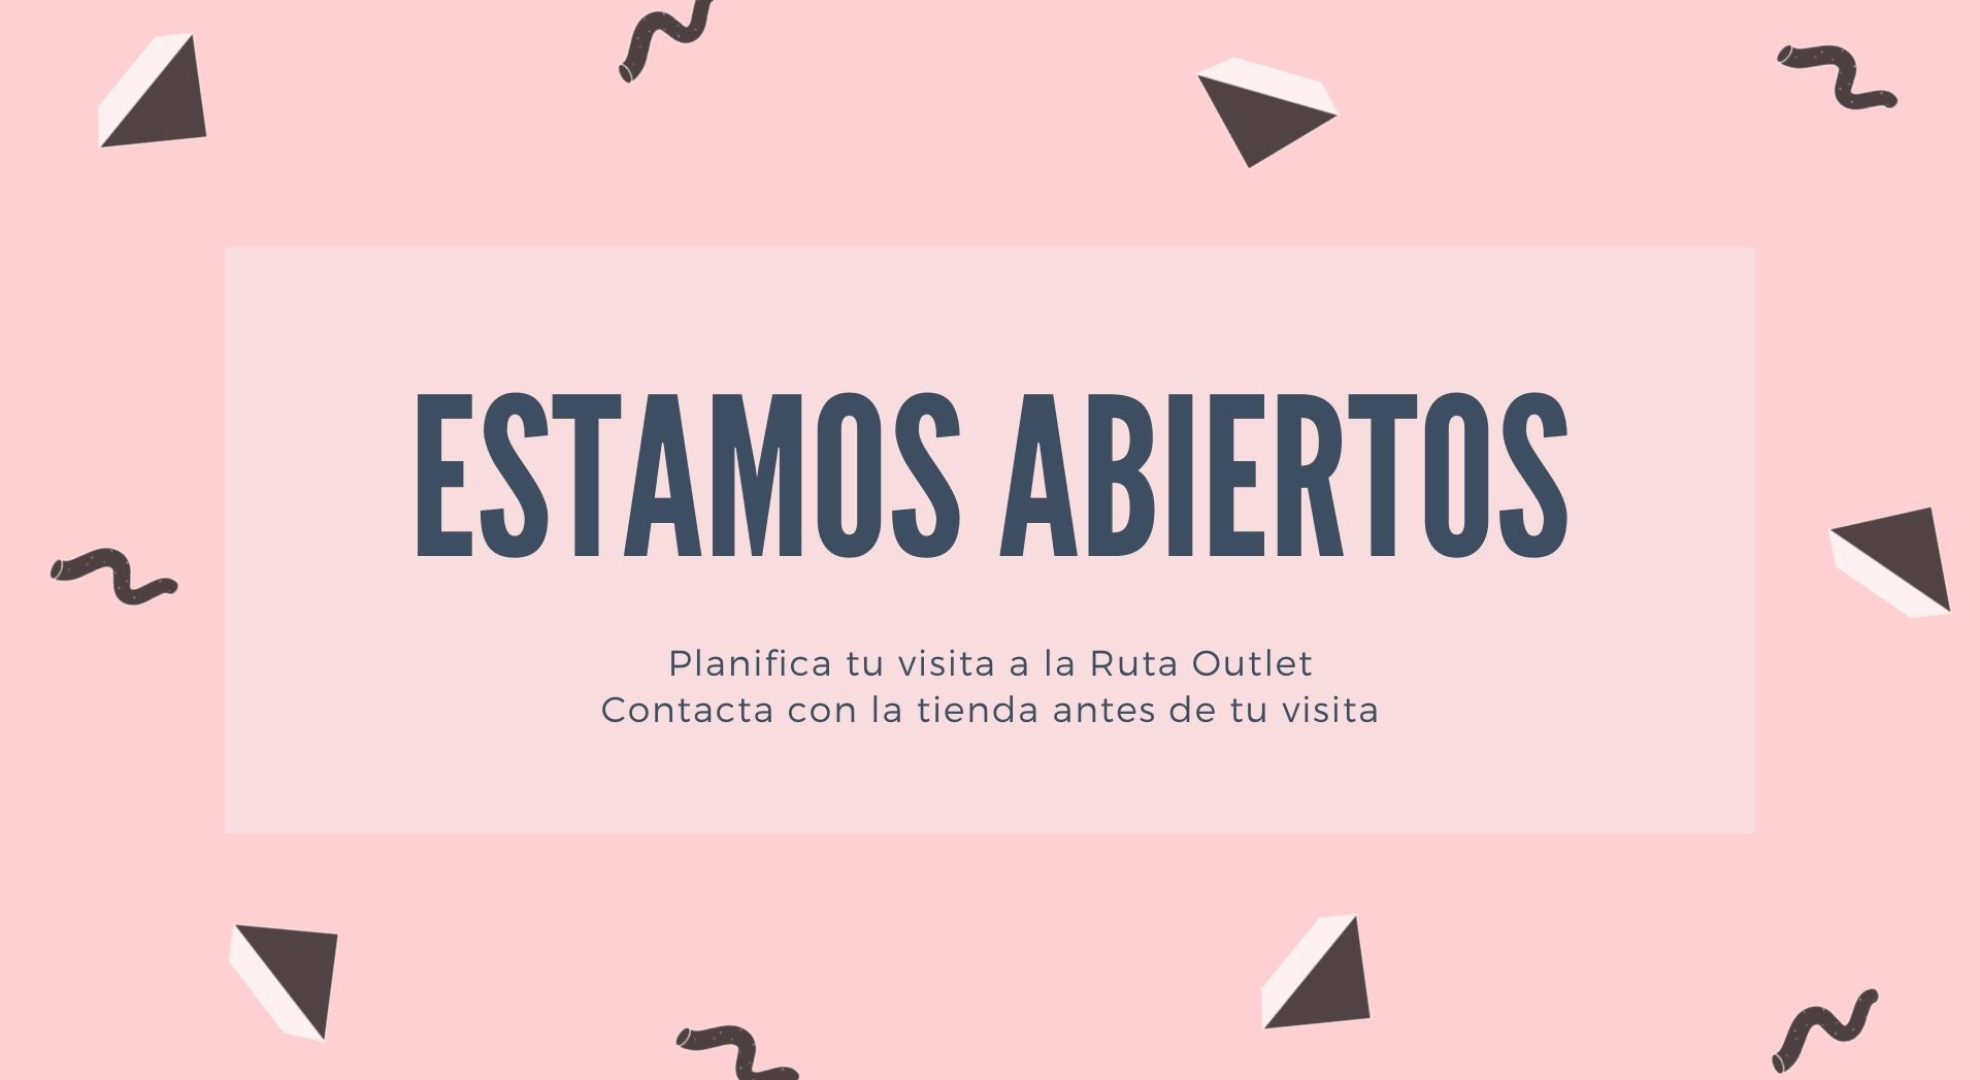 ruta-outlet-abiertos